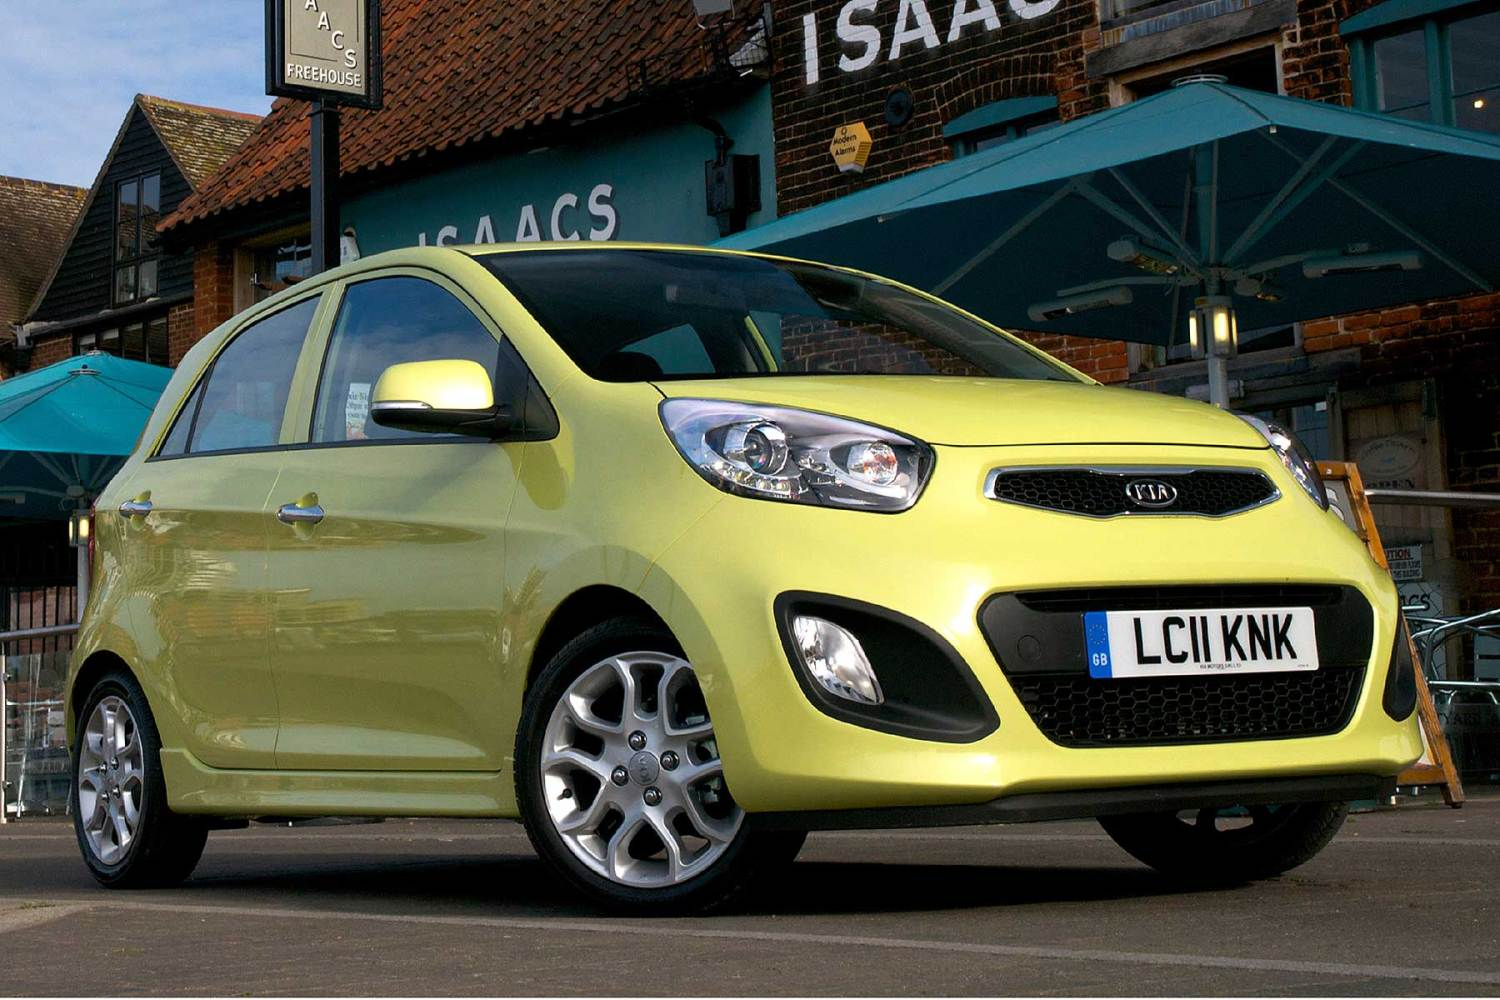 The cheapest cars to insure for 17-18 year olds: Kia Picanto